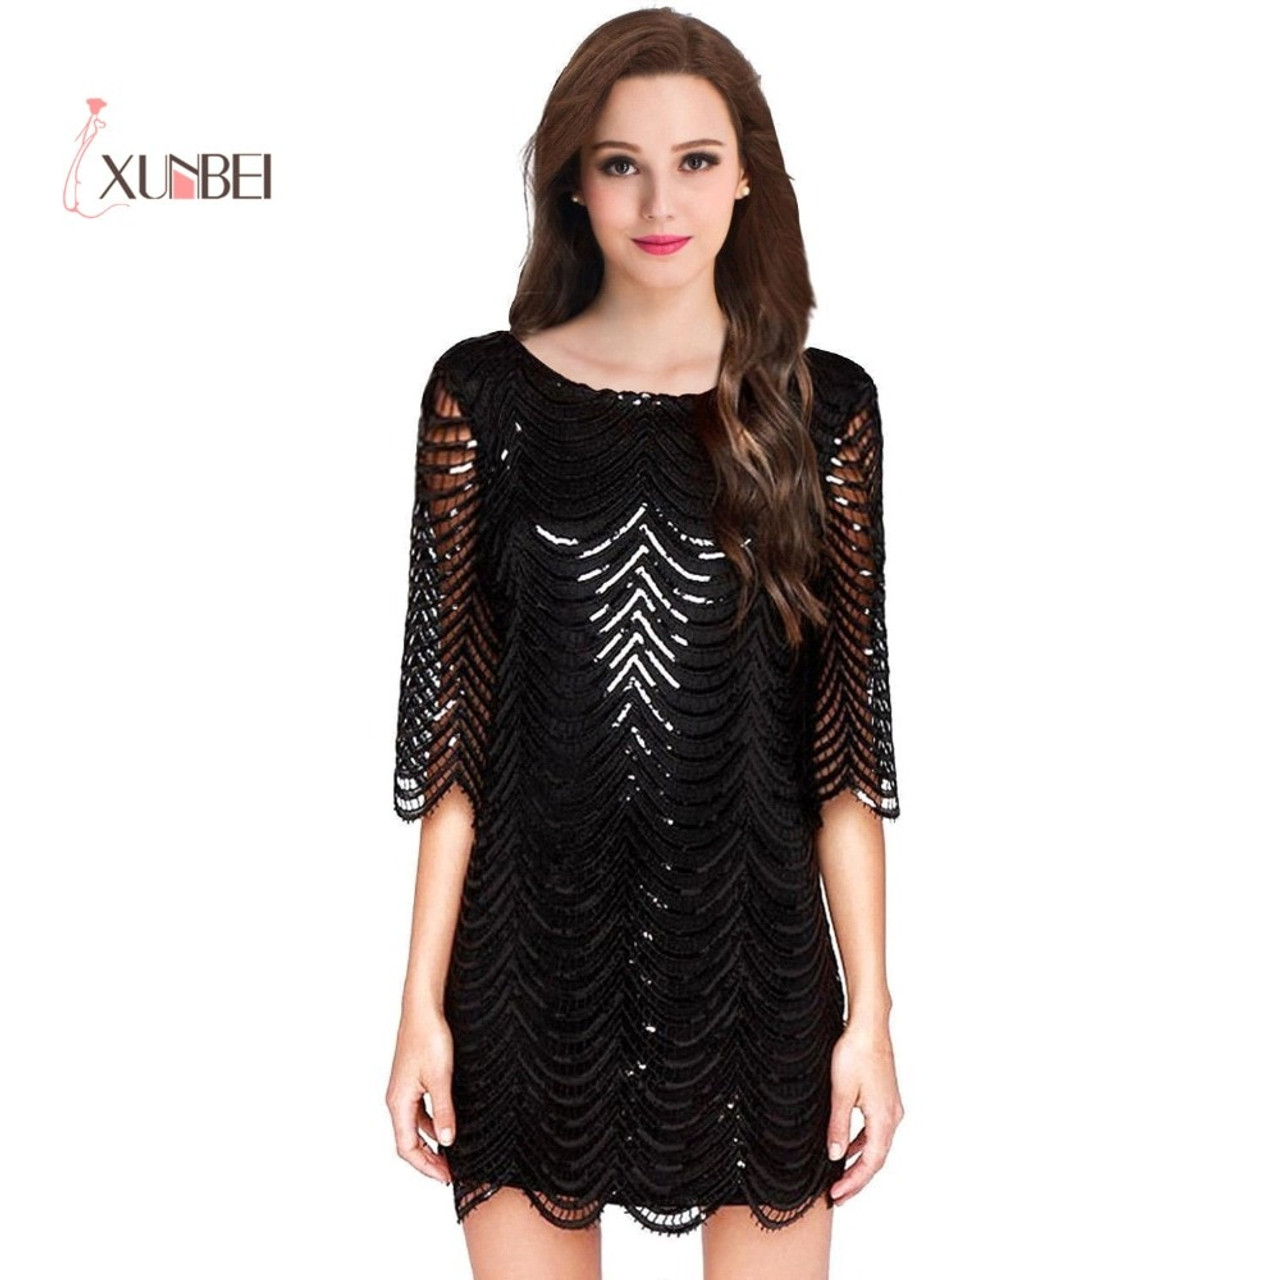 a4a862cdc7 ... Black 1/2 Long Sleeves Sequined Lace Robe Cocktail Dresses Mini Short  Straight Party Evening ...